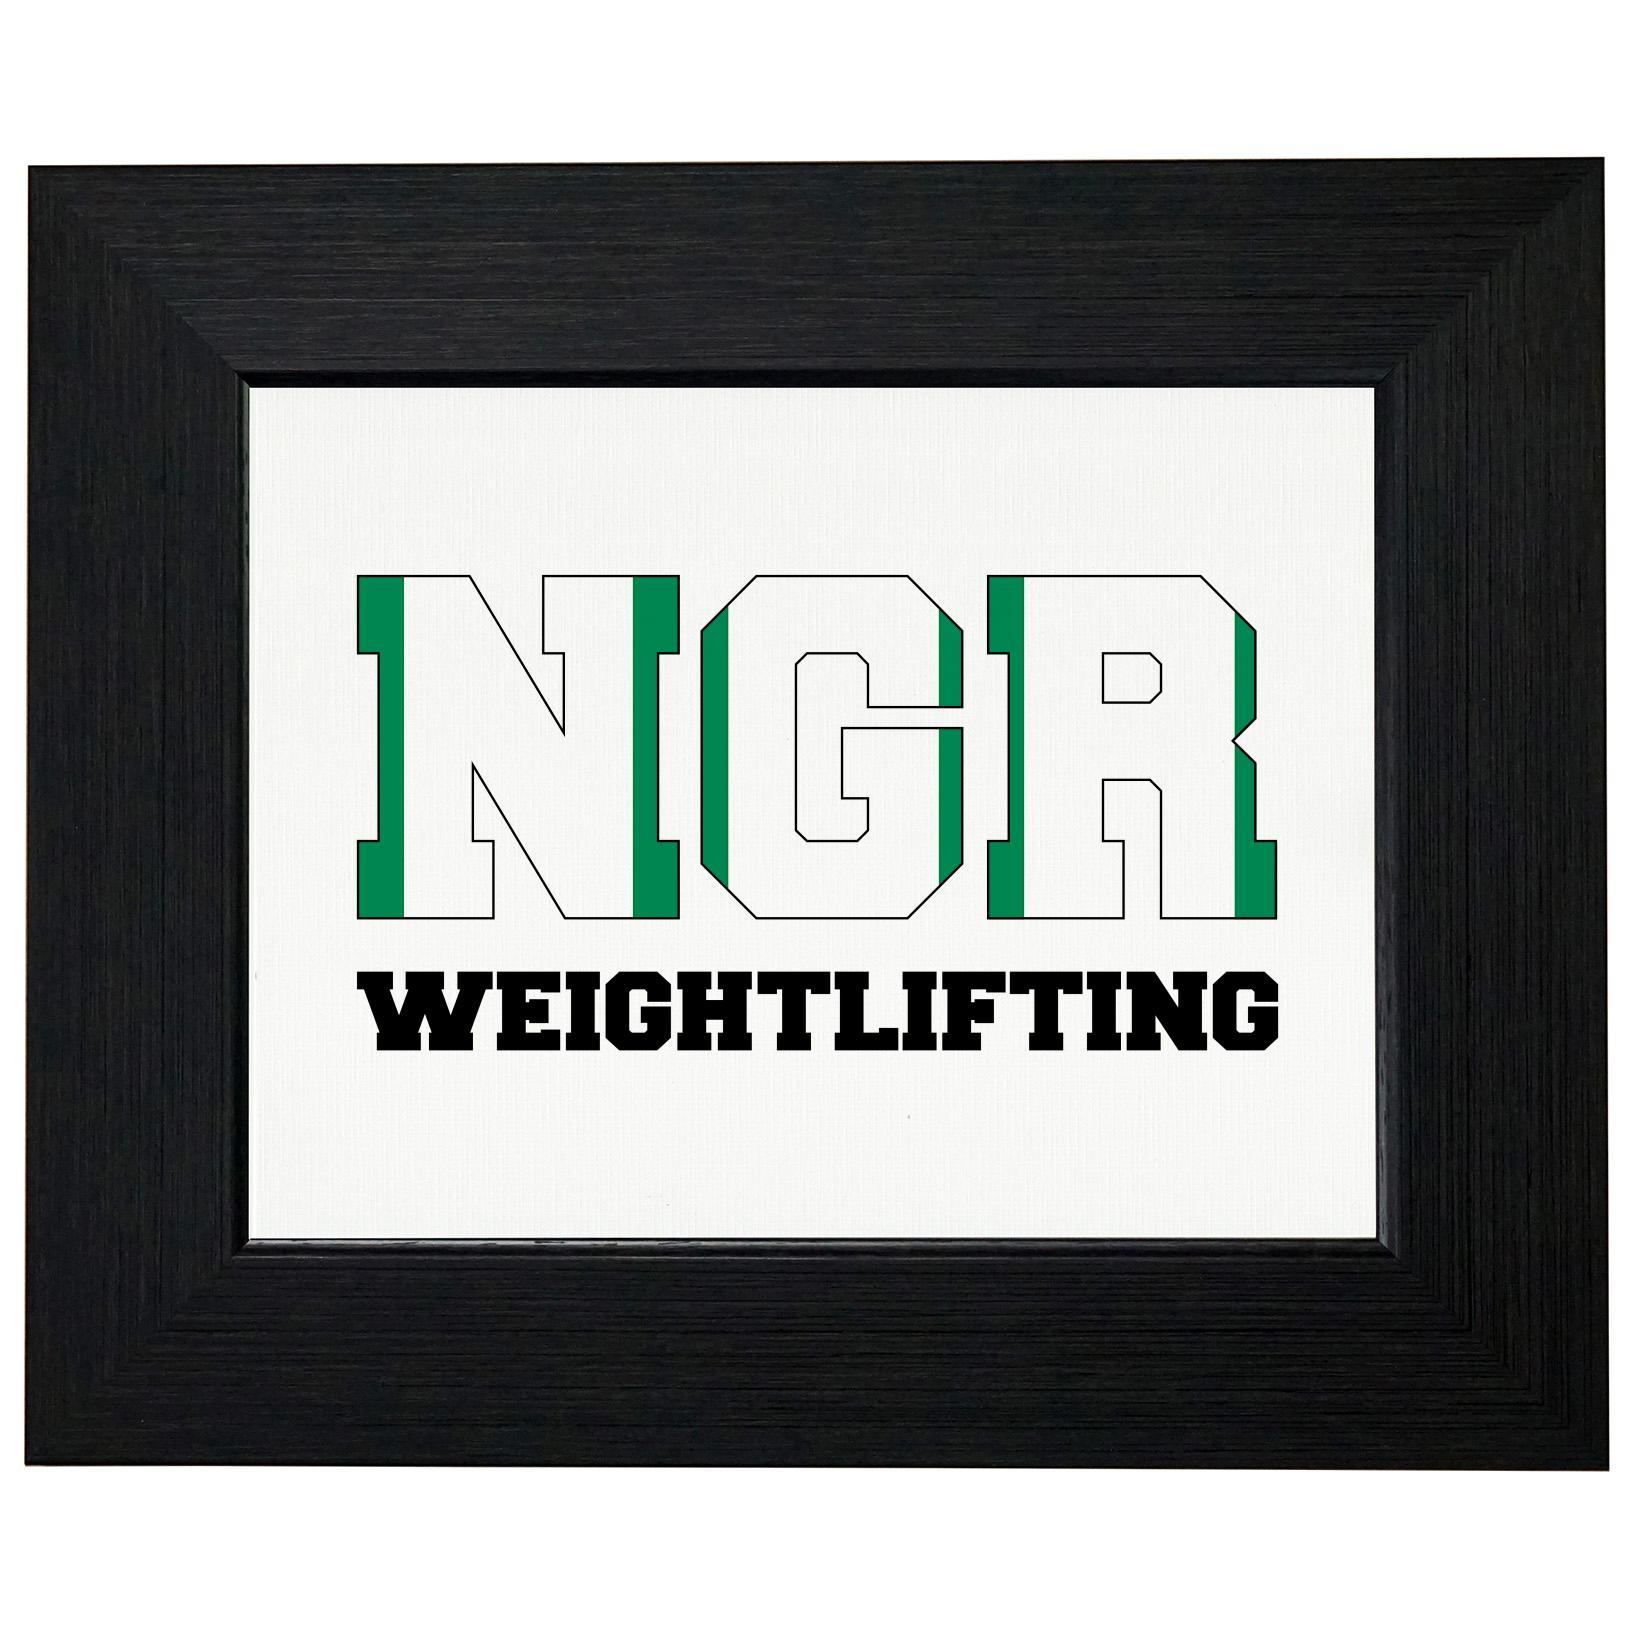 Nigeria Weightlifting - Olympic Games - Rio - Flag Framed Print Poster Wall or Desk Mount Options